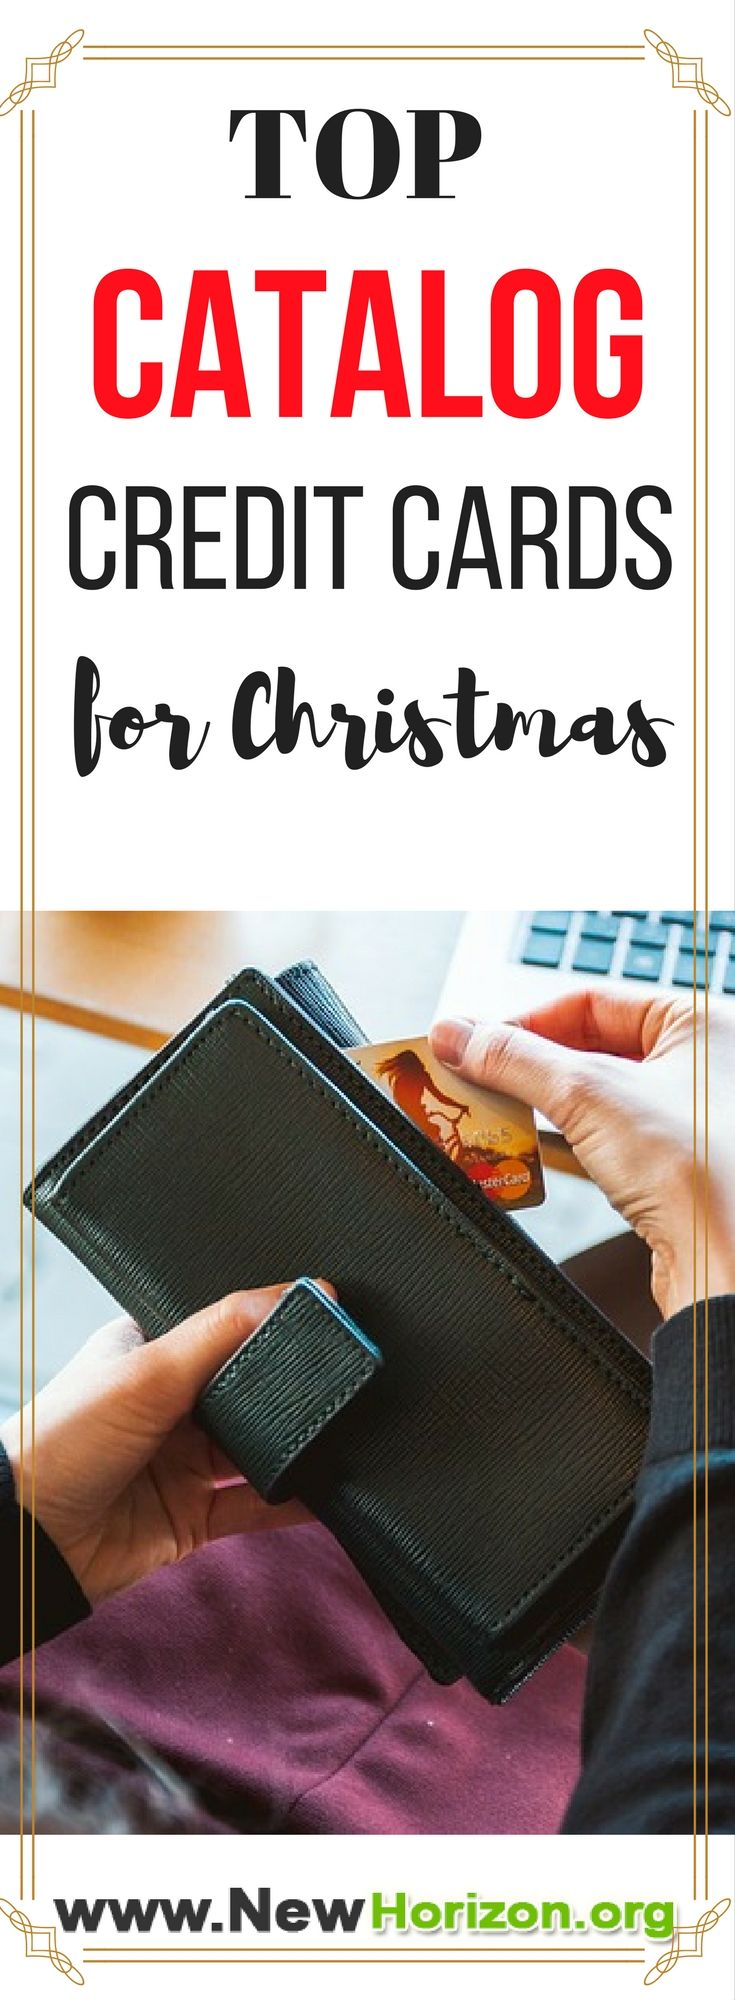 Looking for Catalog Credit Card you can use this coming holiday season? Well check these top catalog credit cards that's best for Christmas.